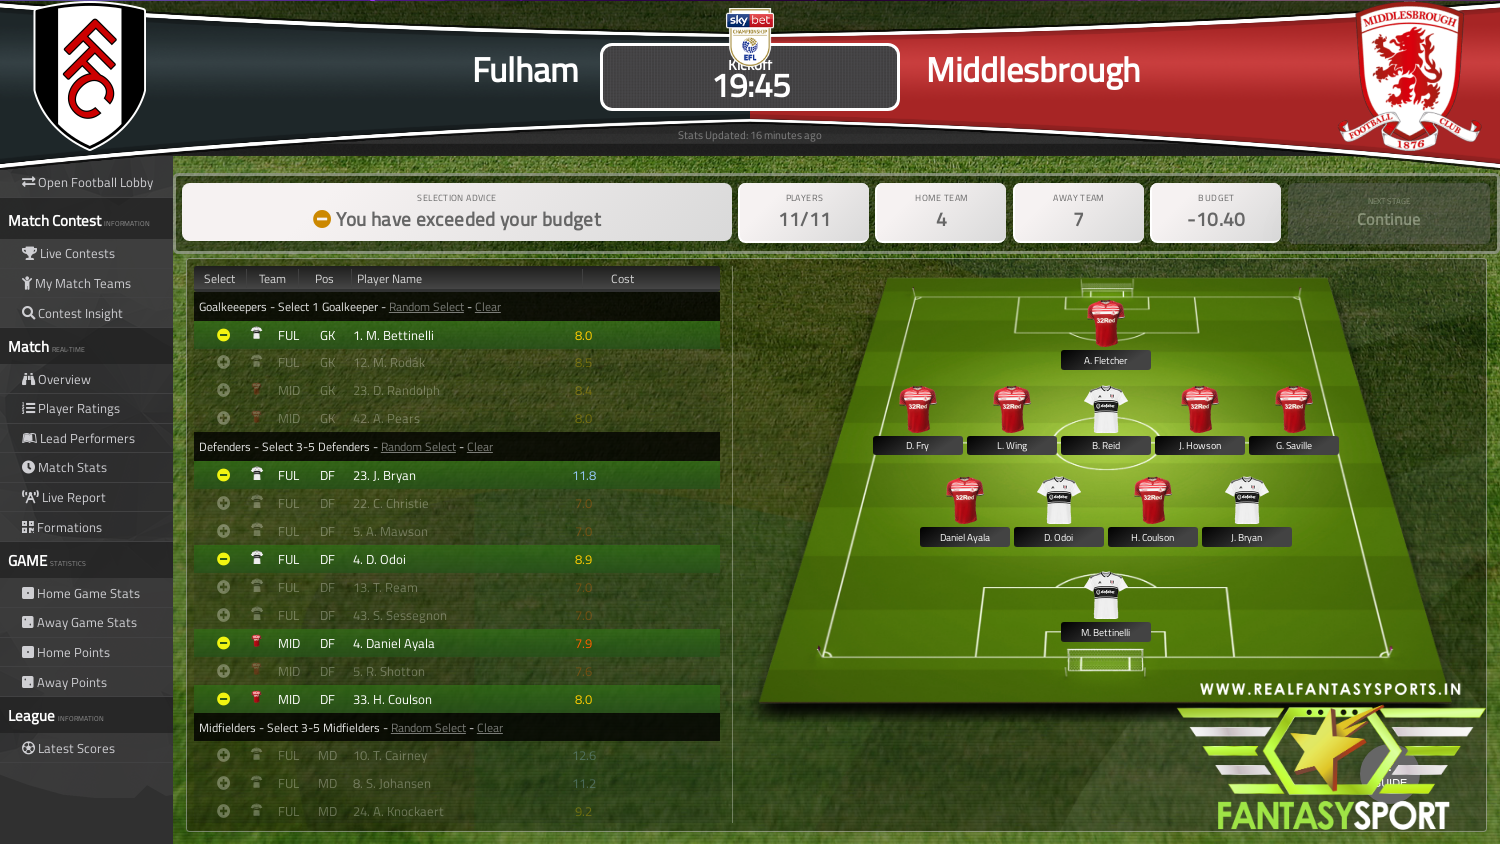 Fulham Vs Middlesbrough Fantasy Football Team